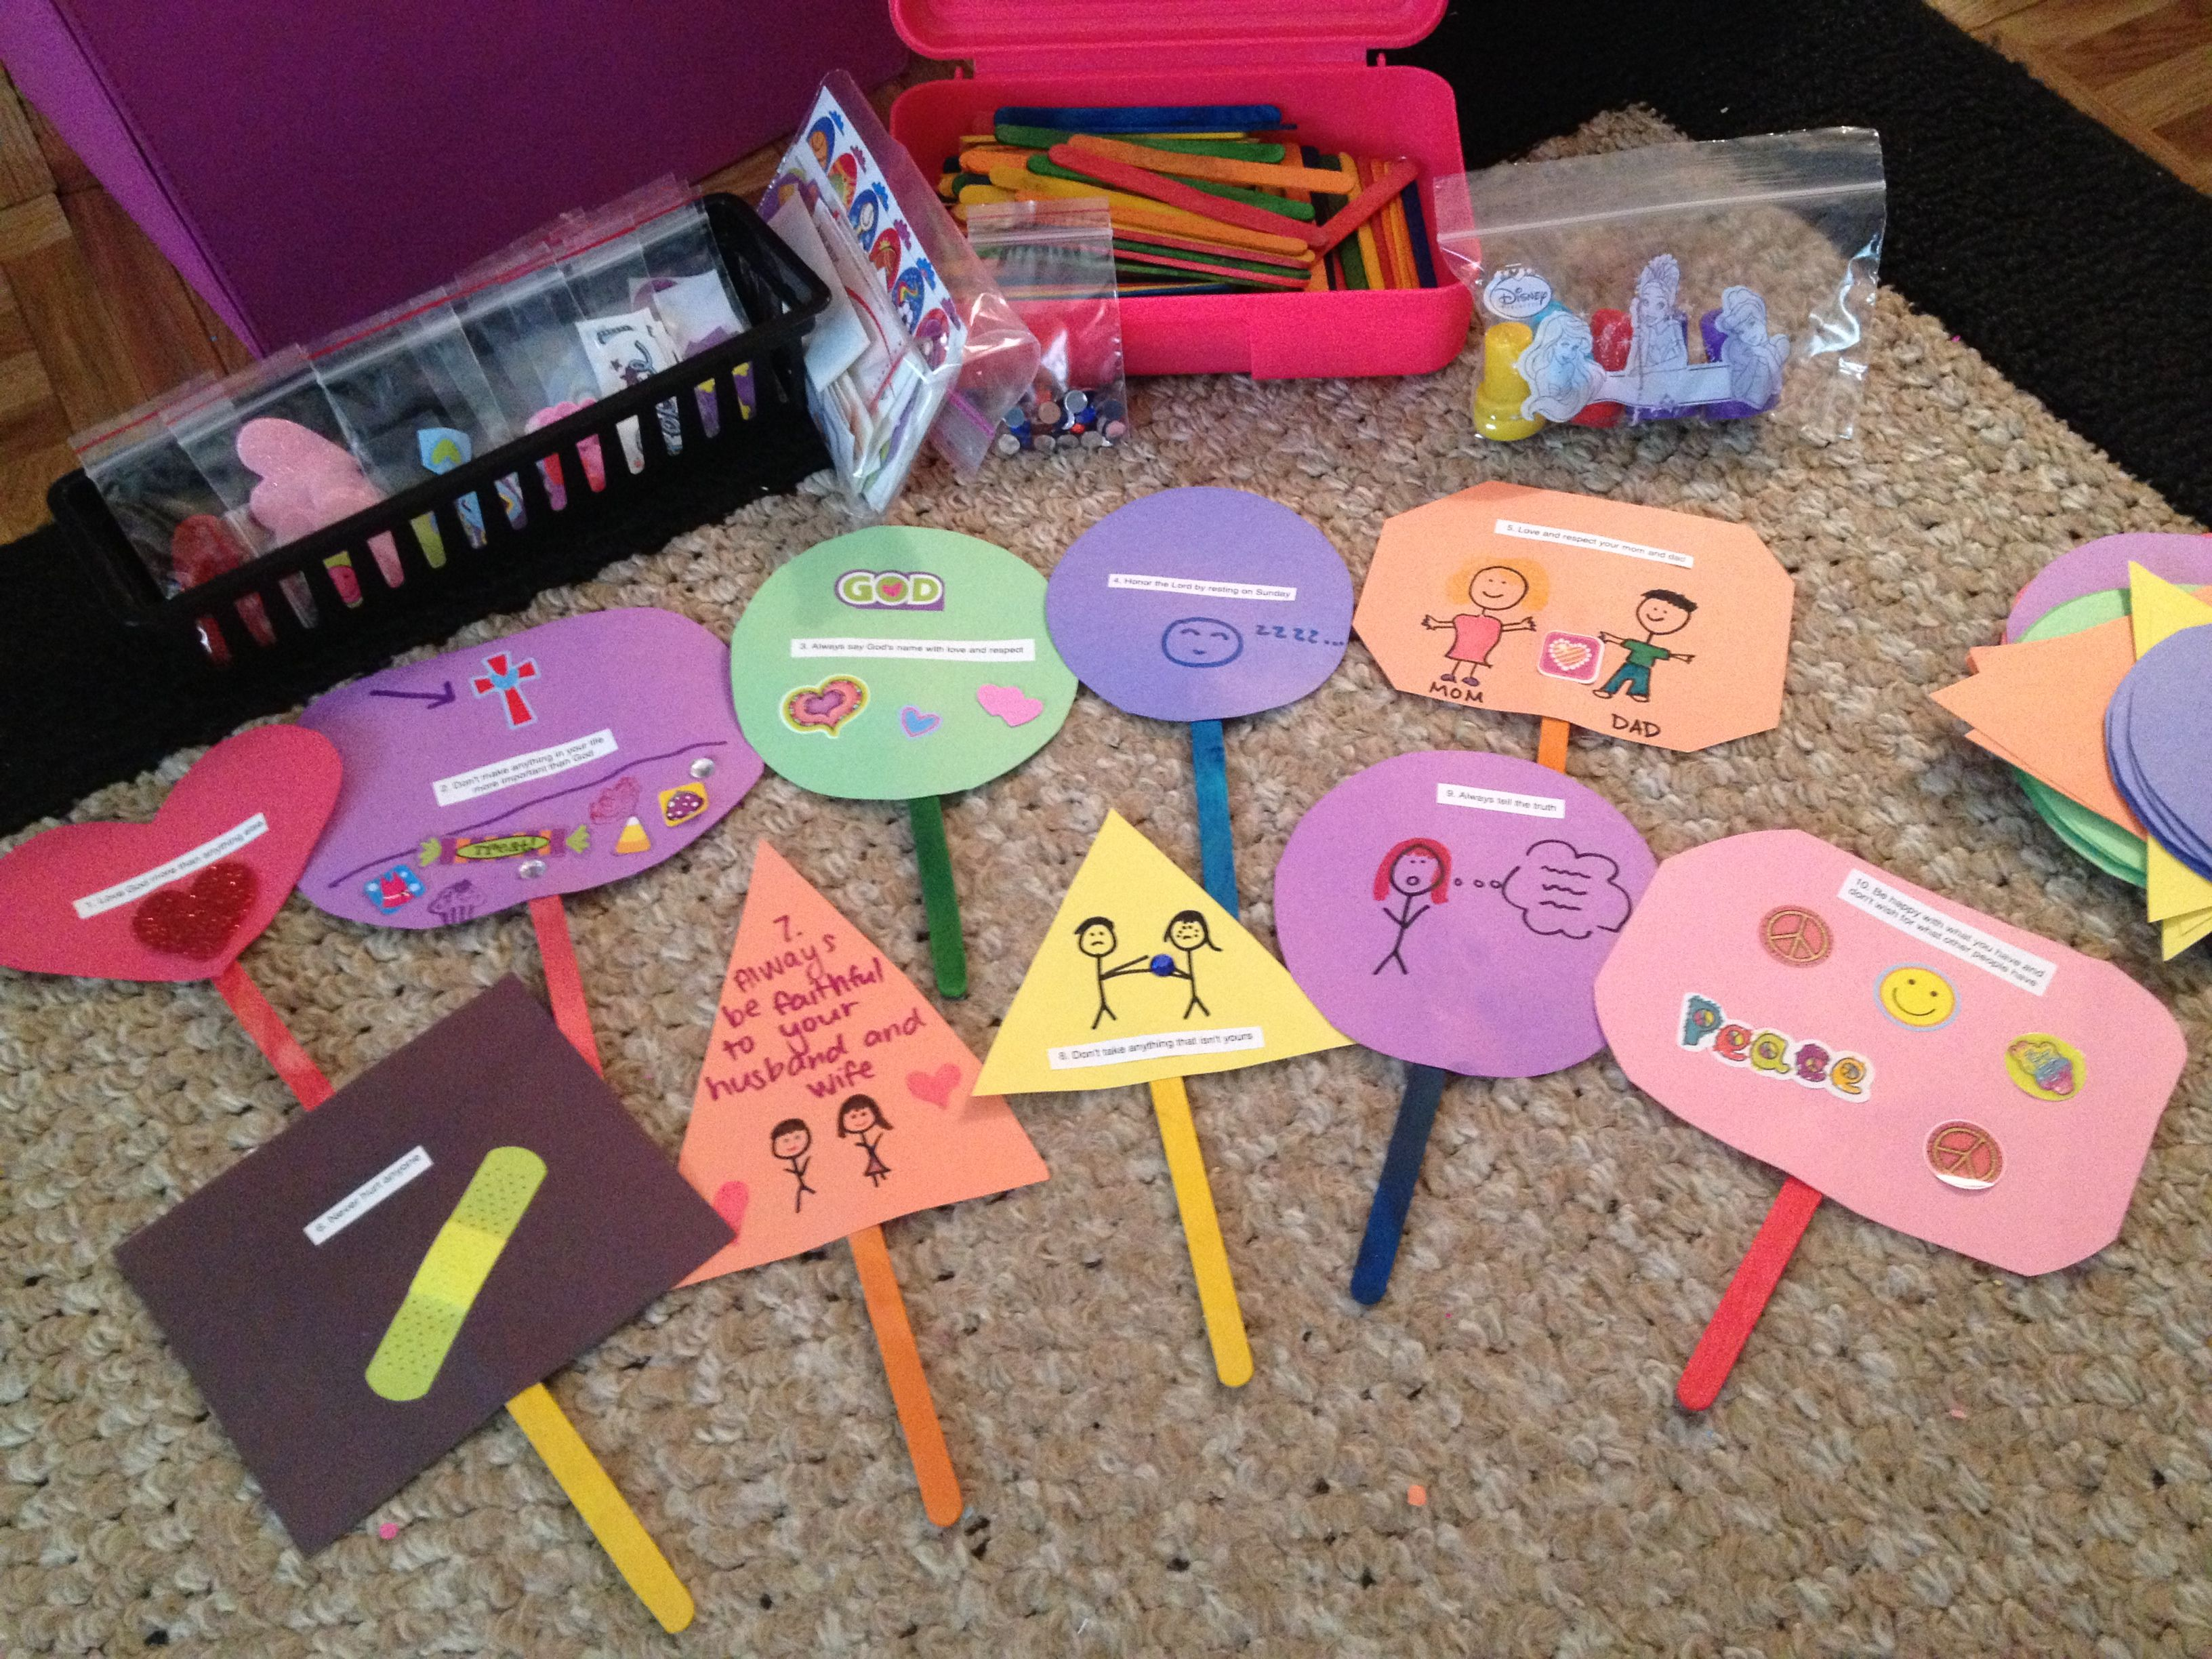 10 Commandment Sign Activity Cut Out Shapes Out Of Colored